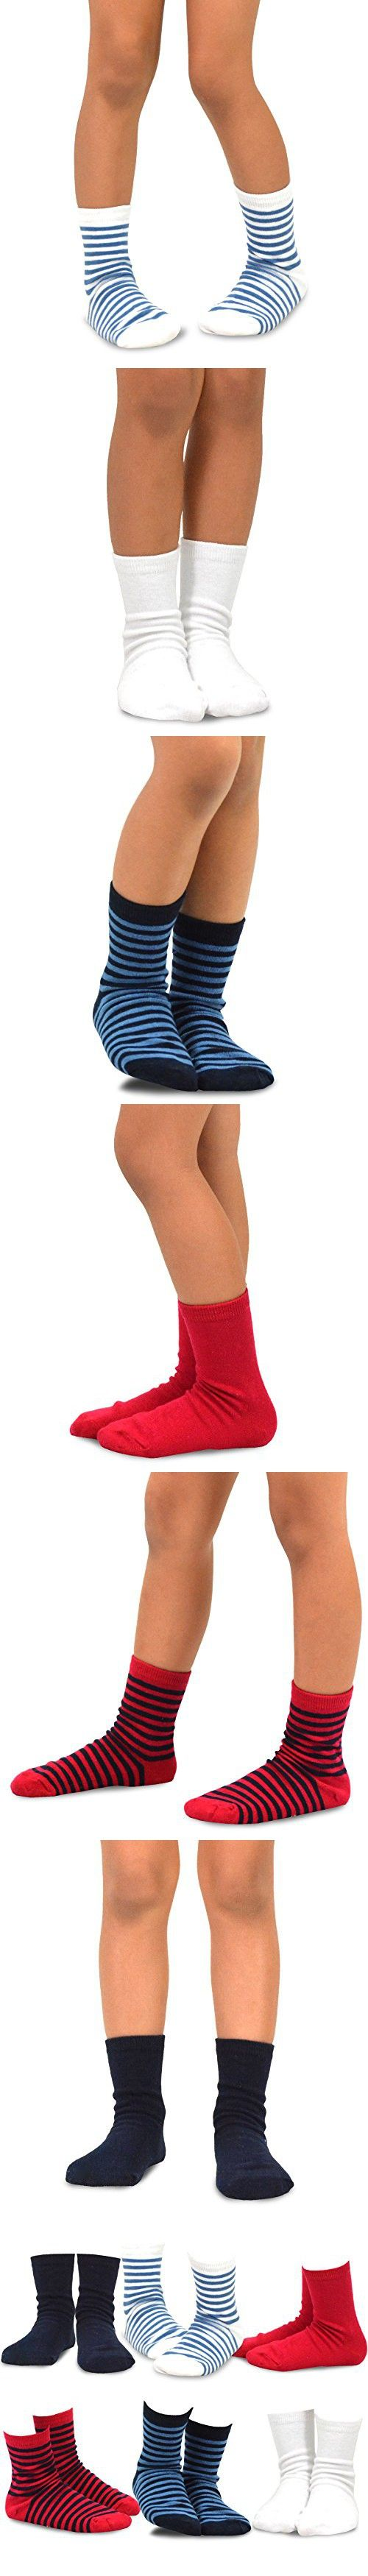 Naartjie Kids Boys Short Crew Socks - Solid and Stripes Mixed Assorted Colors 6-Pack Bright Tone (12-18months)